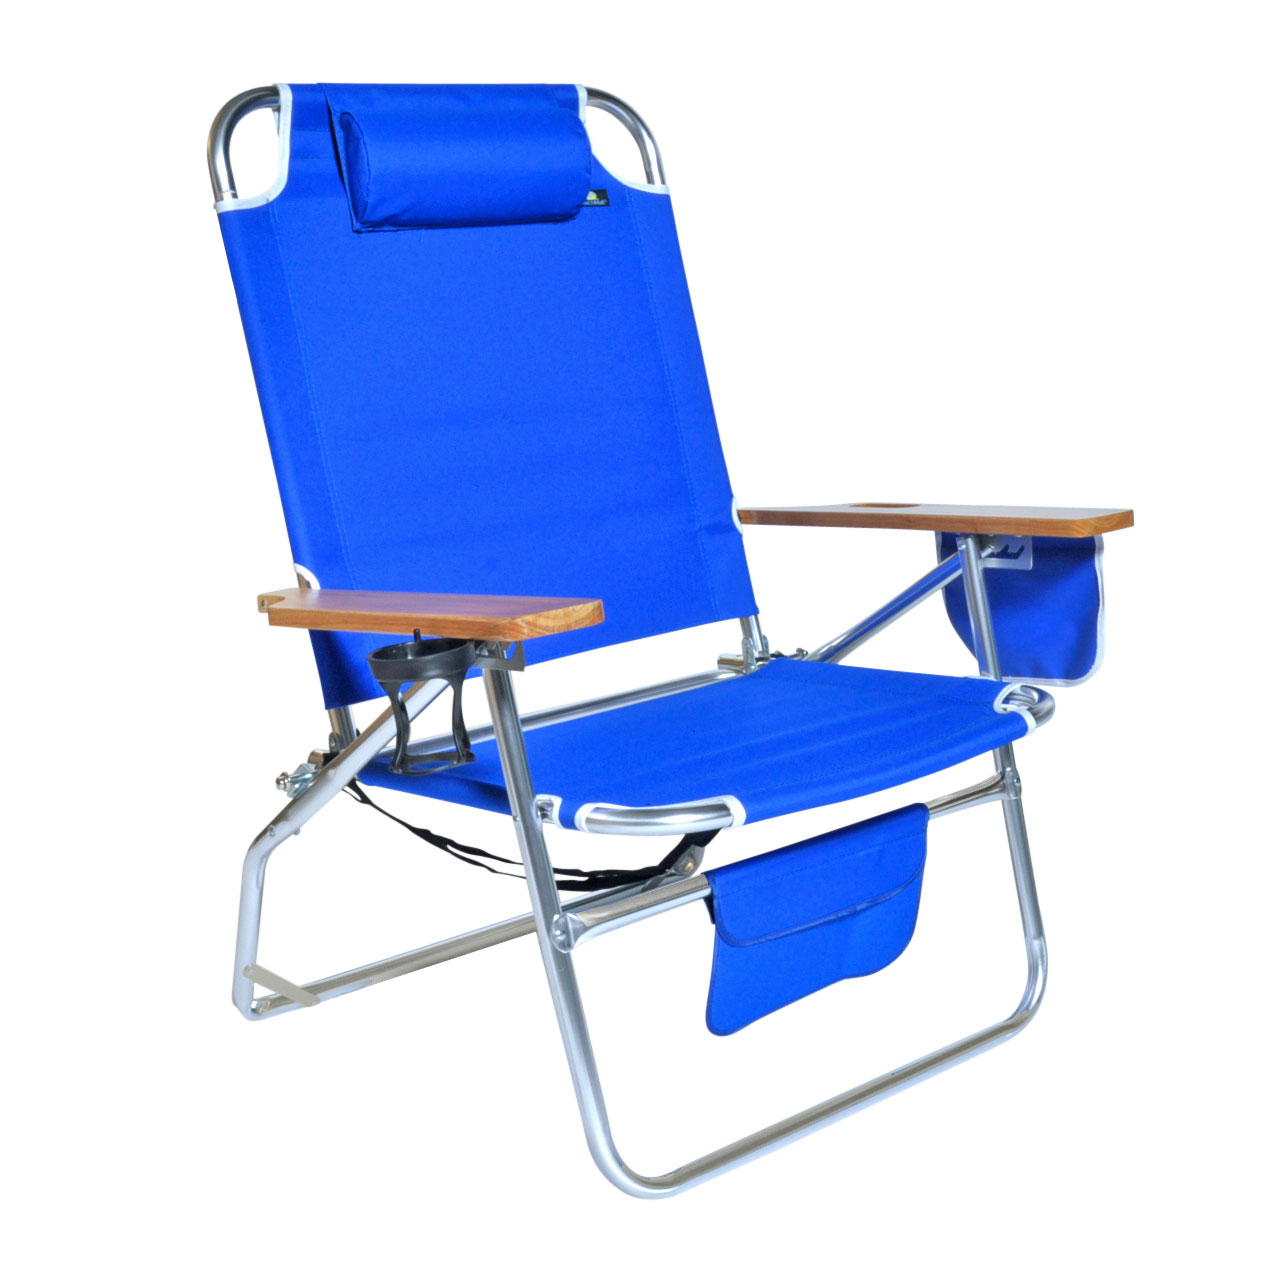 surf gear big daddy beach chair personalized folding chairs walmart com product image jumbo heavy duty 500 lbs xl aluminum for tall